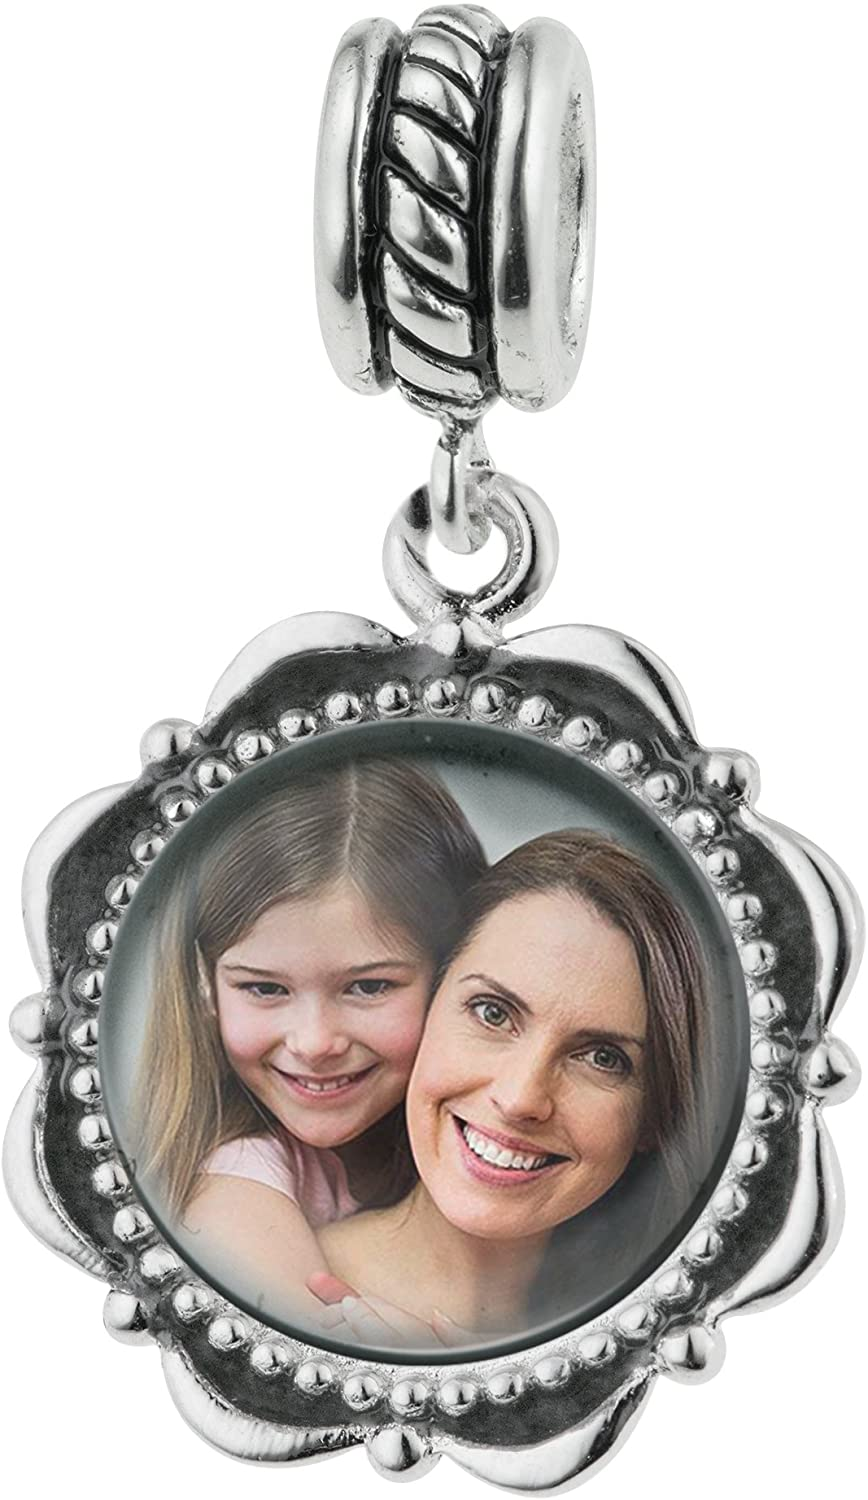 Qina C 925 Sterling Silver Personalized Photo Dangle Charm Bead For European Charm Bracelets